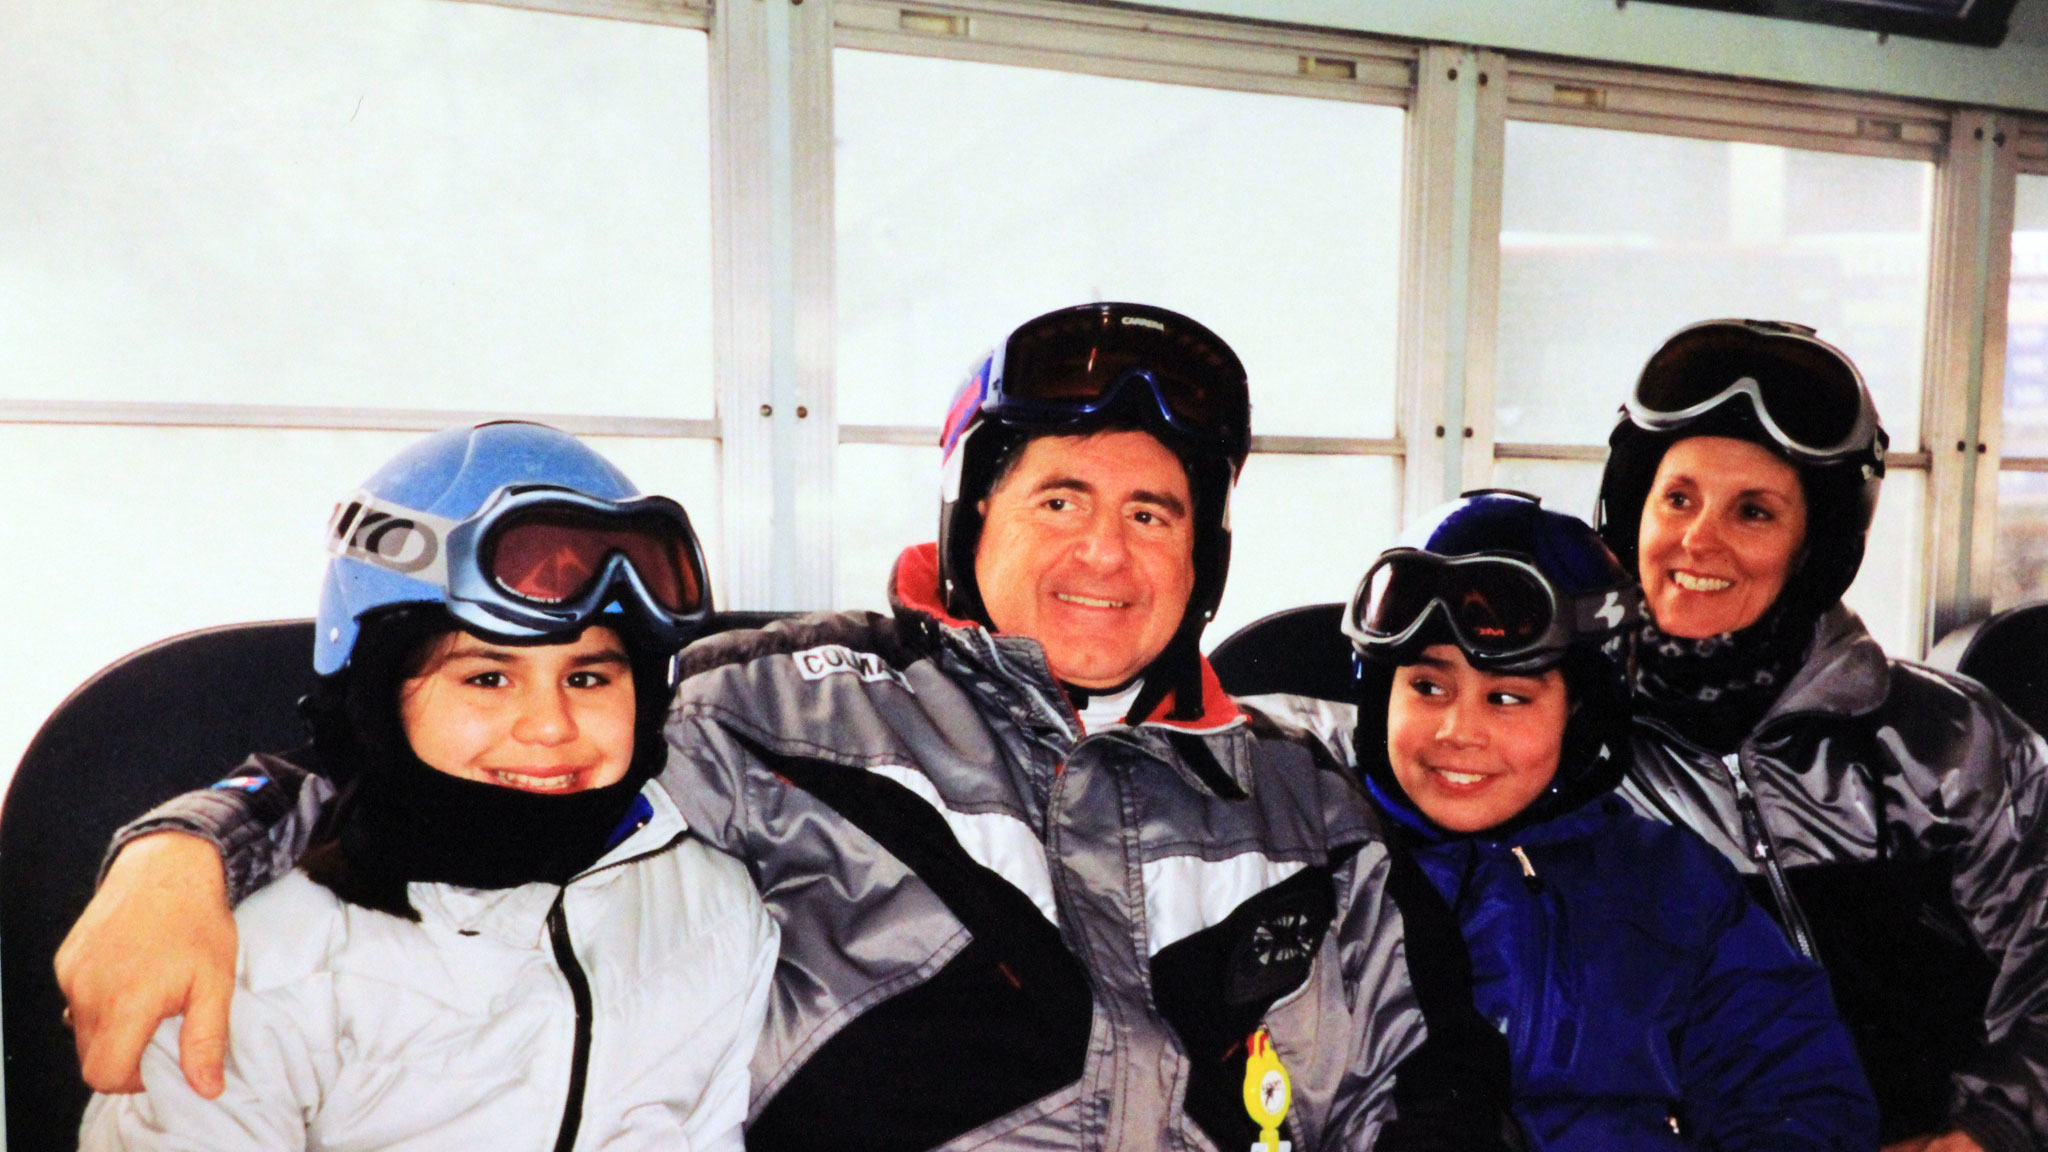 A Family of Skiers